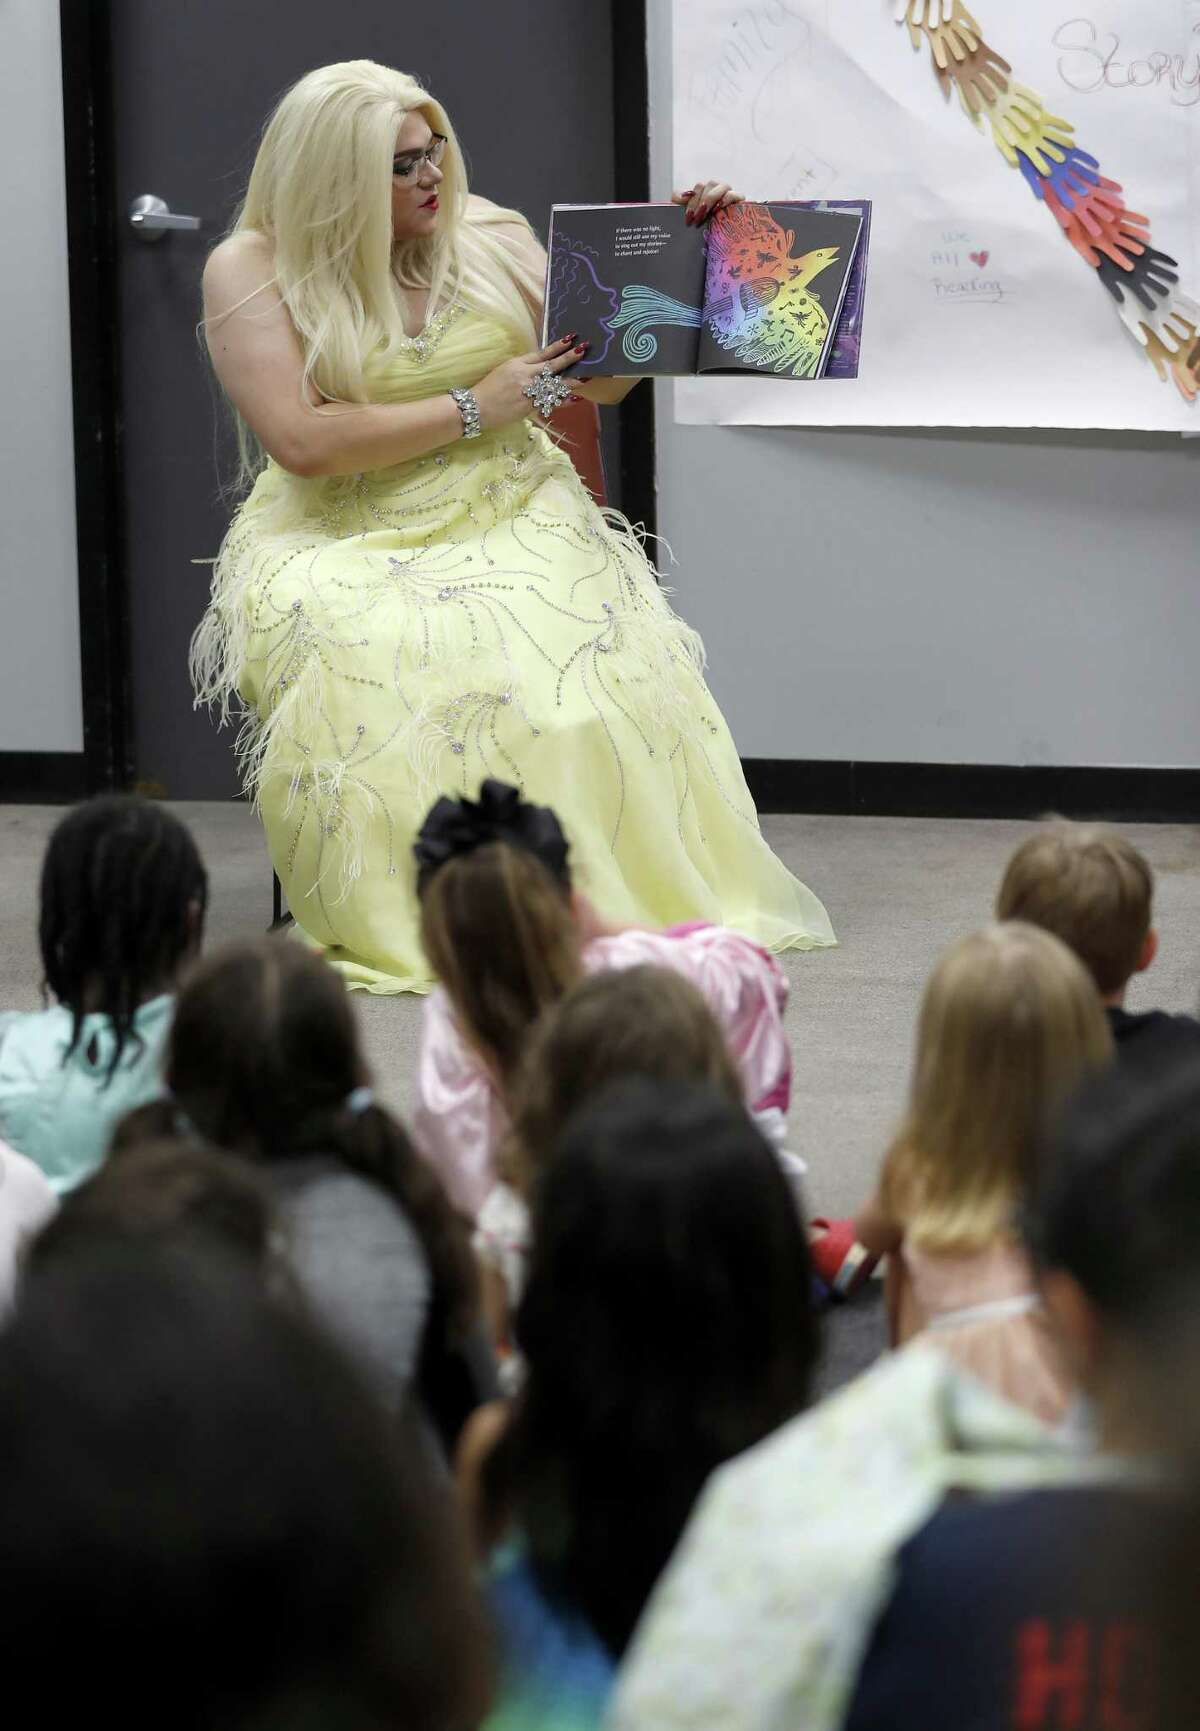 Tatiana reads a book to children during the monthly Drag Queen Story Time at Freed-Montrose Neighborhood Library, Saturday, September 29, 2018, in Houston. Saturday marked the one-year anniversary of the story hour, which happens on the last Saturday of every month.